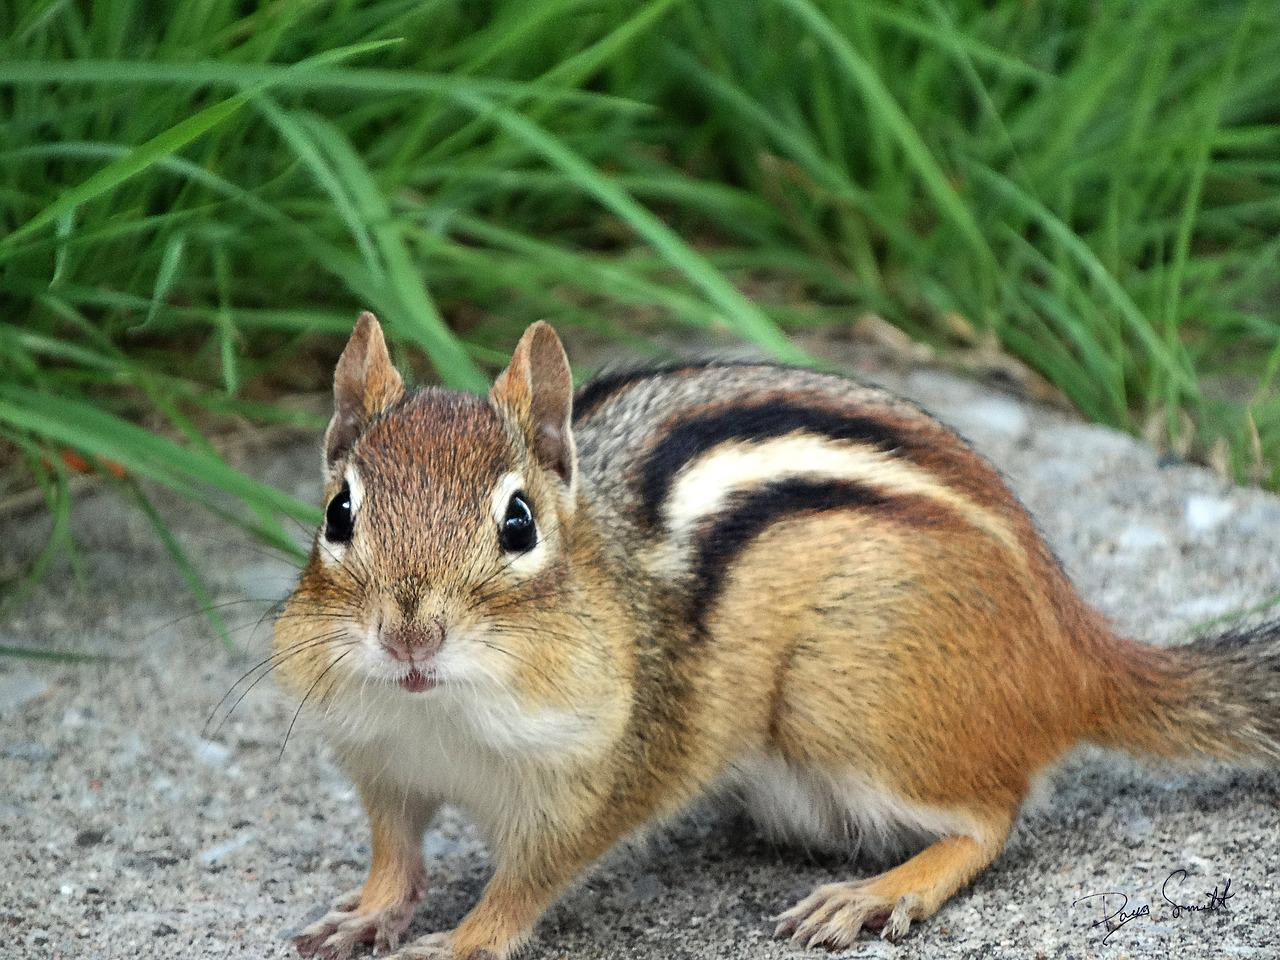 chipmunk staring at the camera